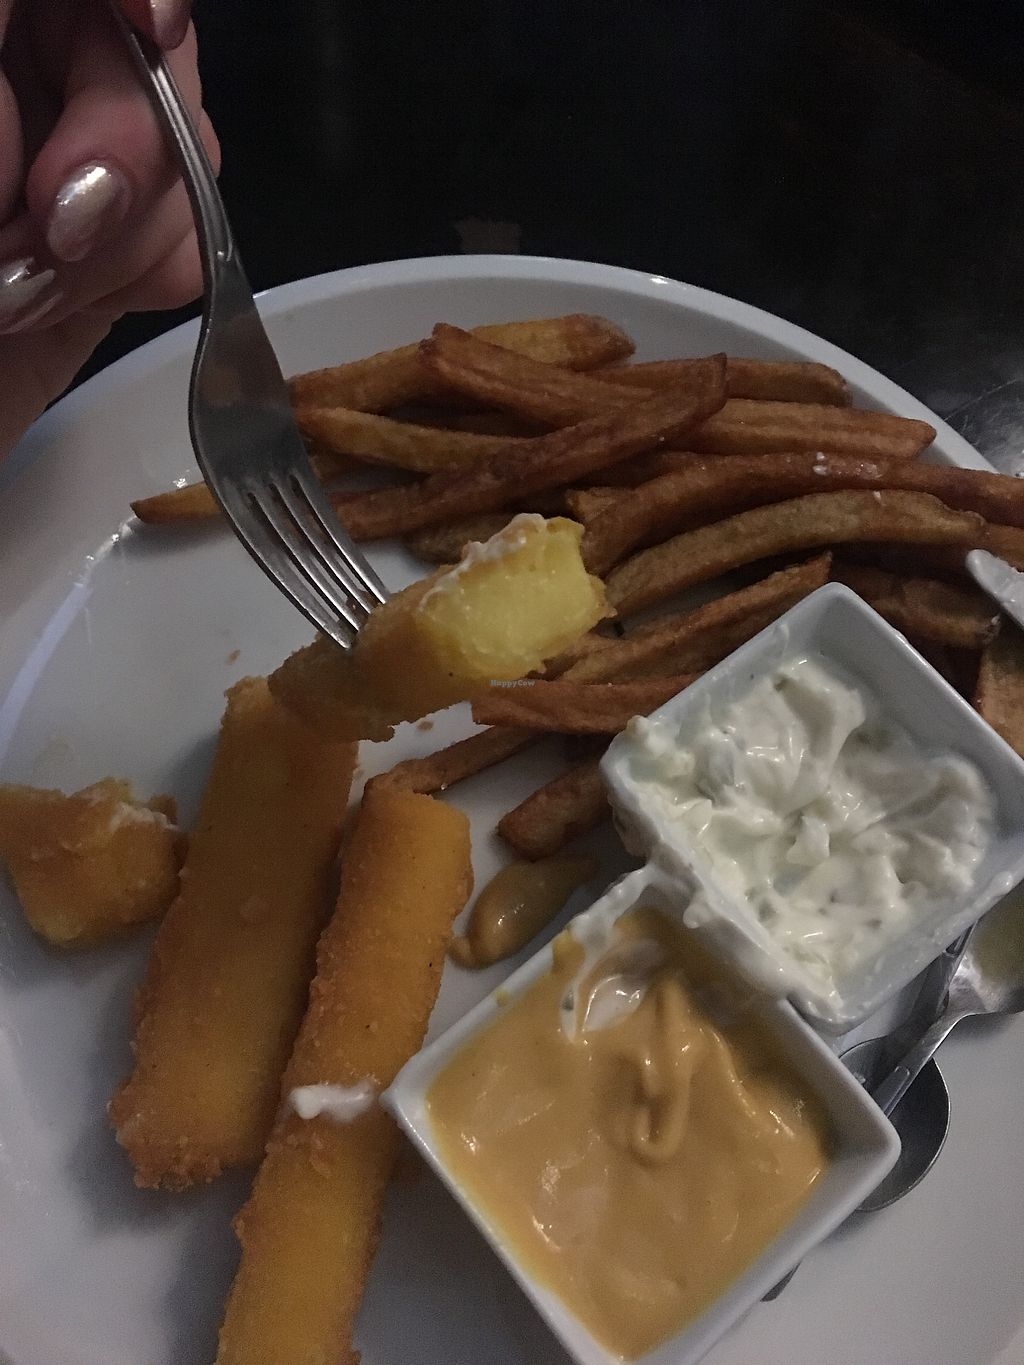 """Photo of Belzepub  by <a href=""""/members/profile/DomiGer"""">DomiGer</a> <br/>Fried cheese  <br/> November 5, 2017  - <a href='/contact/abuse/image/53523/322079'>Report</a>"""